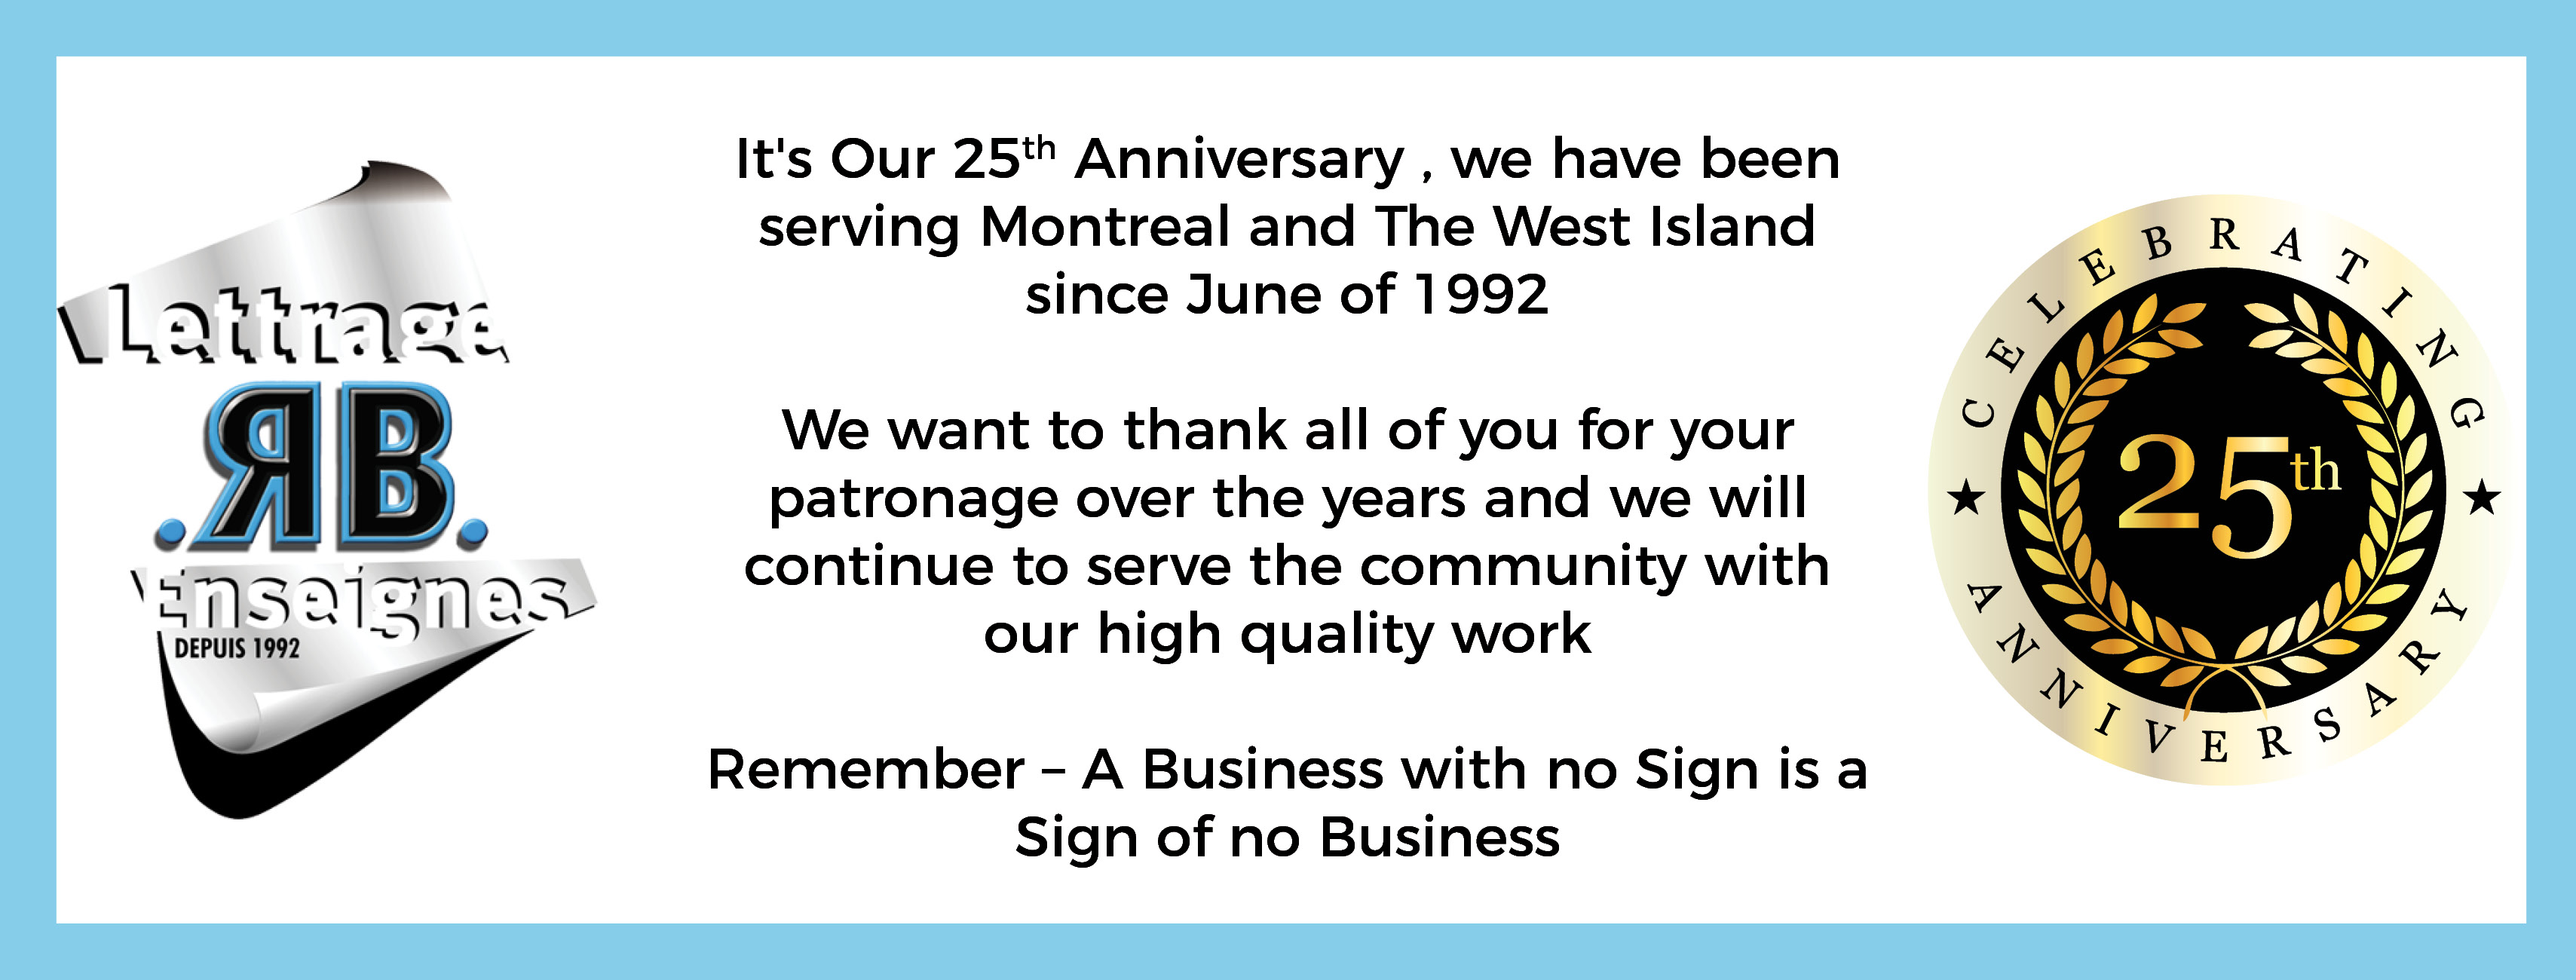 It's Our 25th Anniversary!